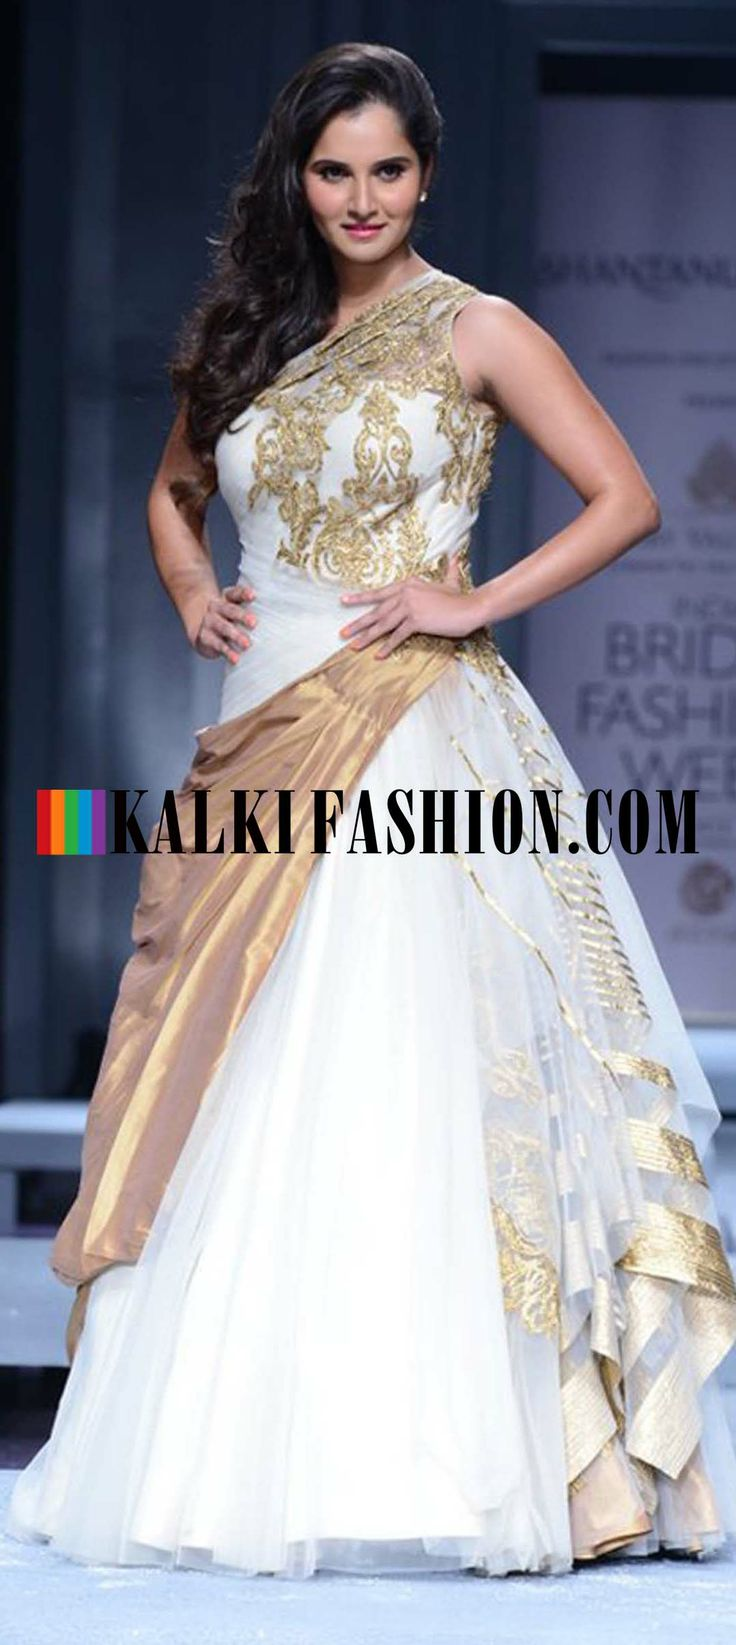 http://www.kalkifashion.com/designers/shantanu-nikhil.html Saniya Mirza as the showstopper graces the ramp in beautiful white and gold gown by Shantanu and Nikhil at Indian Bridal Week Nov 2013 at Mumbai